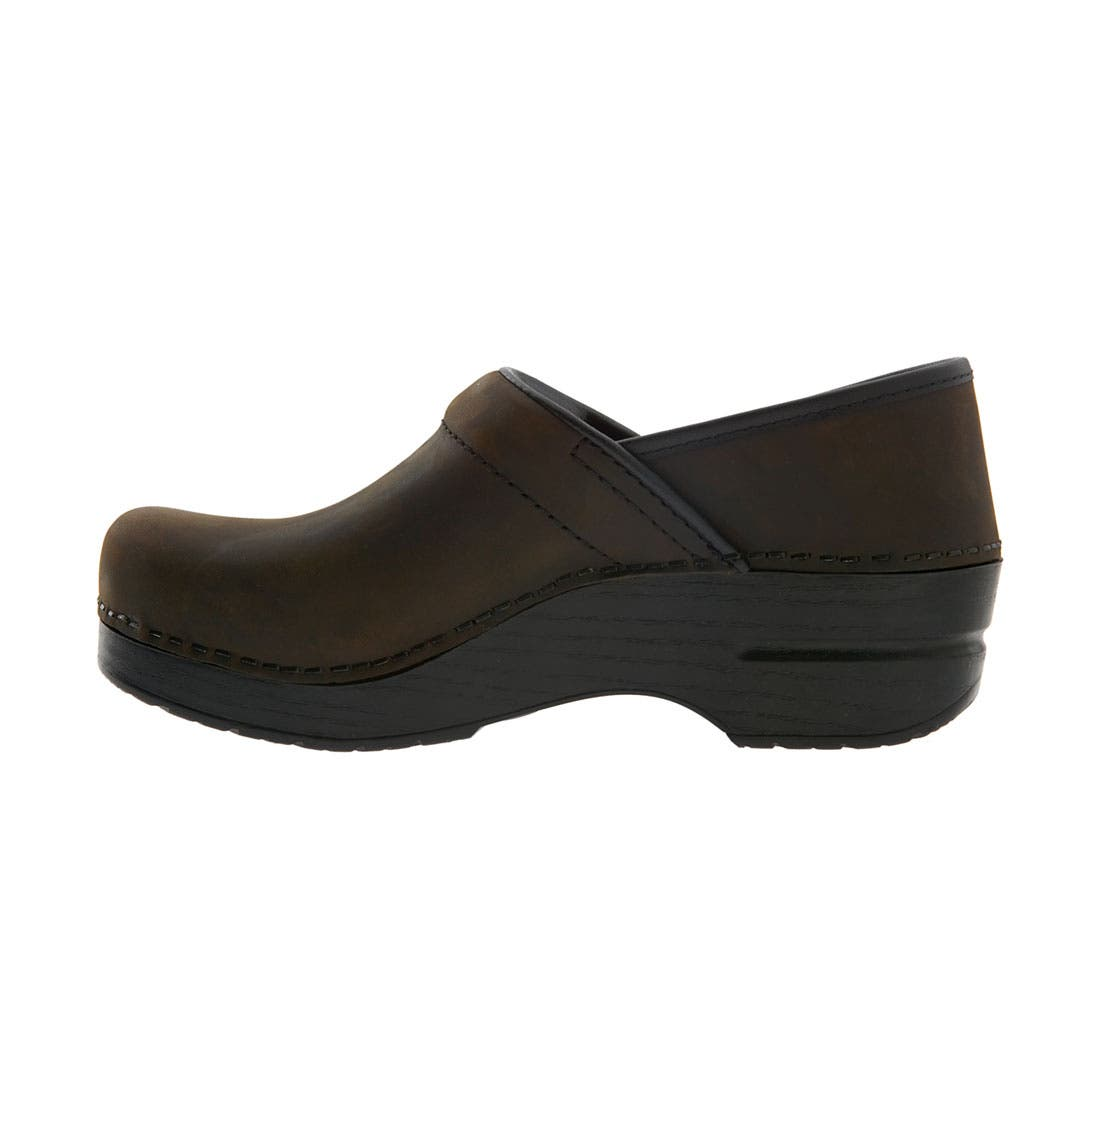 DANSKO,                             'Professional - Narrow' Oiled Leather Clog,                             Alternate thumbnail 3, color,                             ANTIQUE BROWN OILED